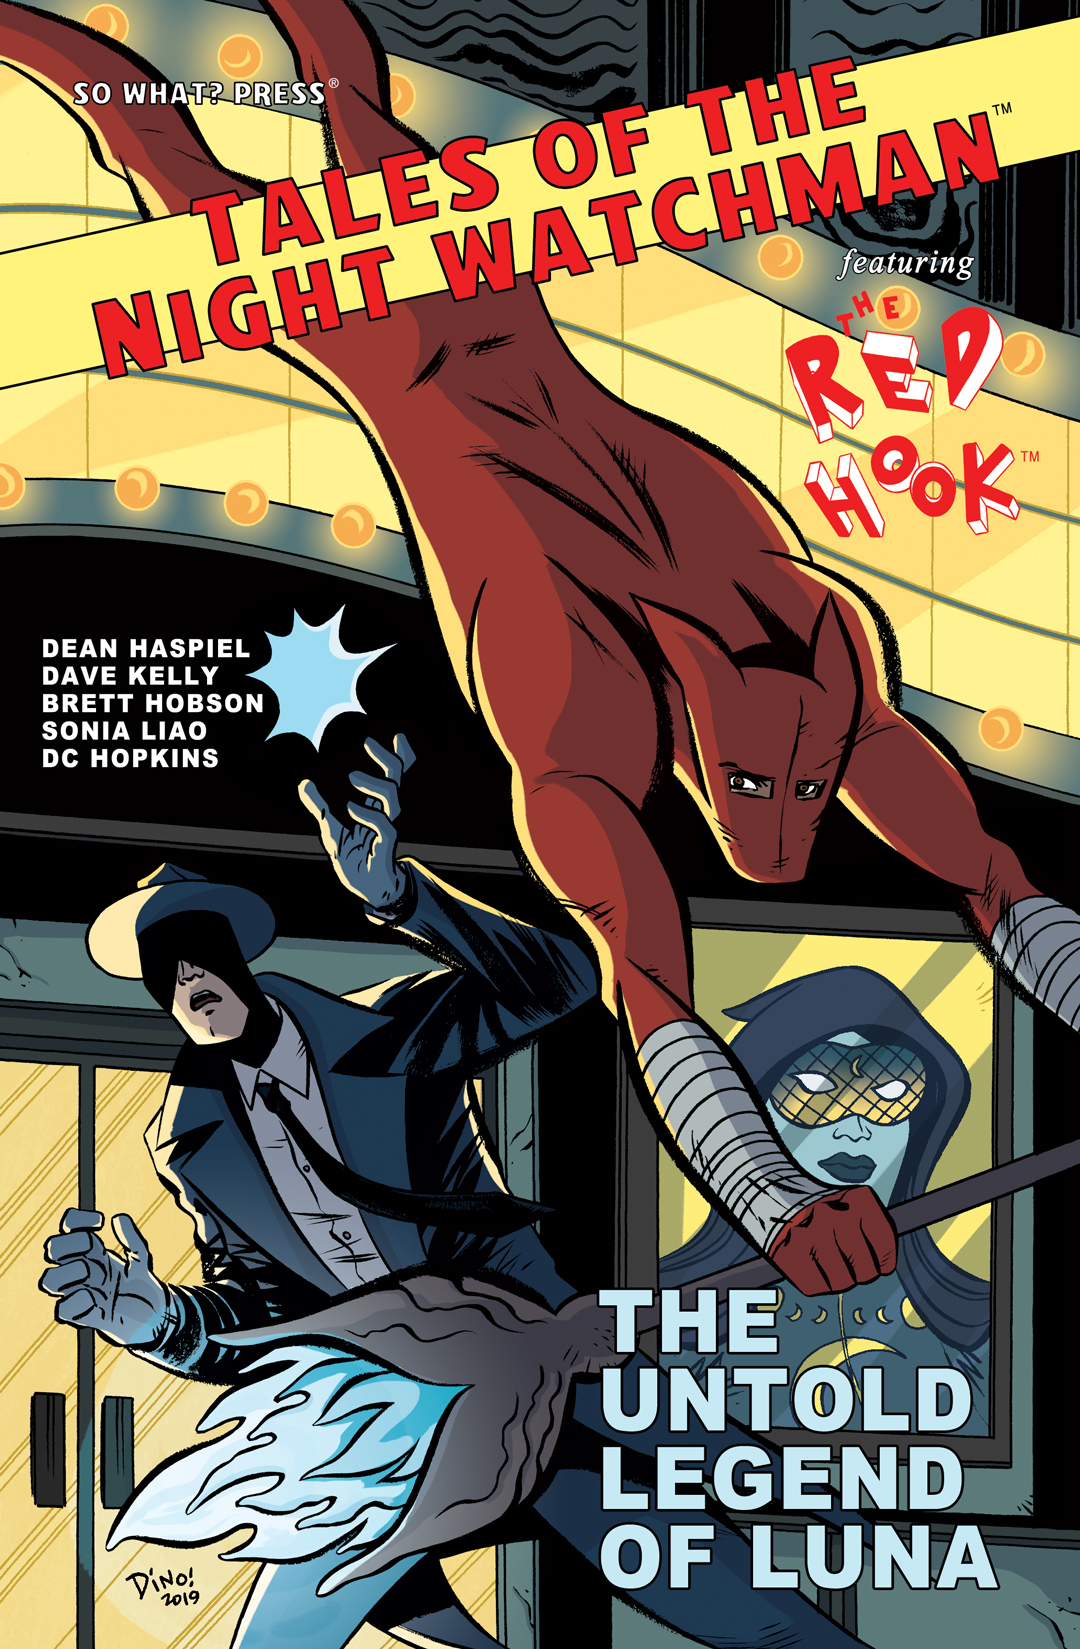 Tales of the Night Watchman / The Red Hook: The Untold Legend of Luna #1